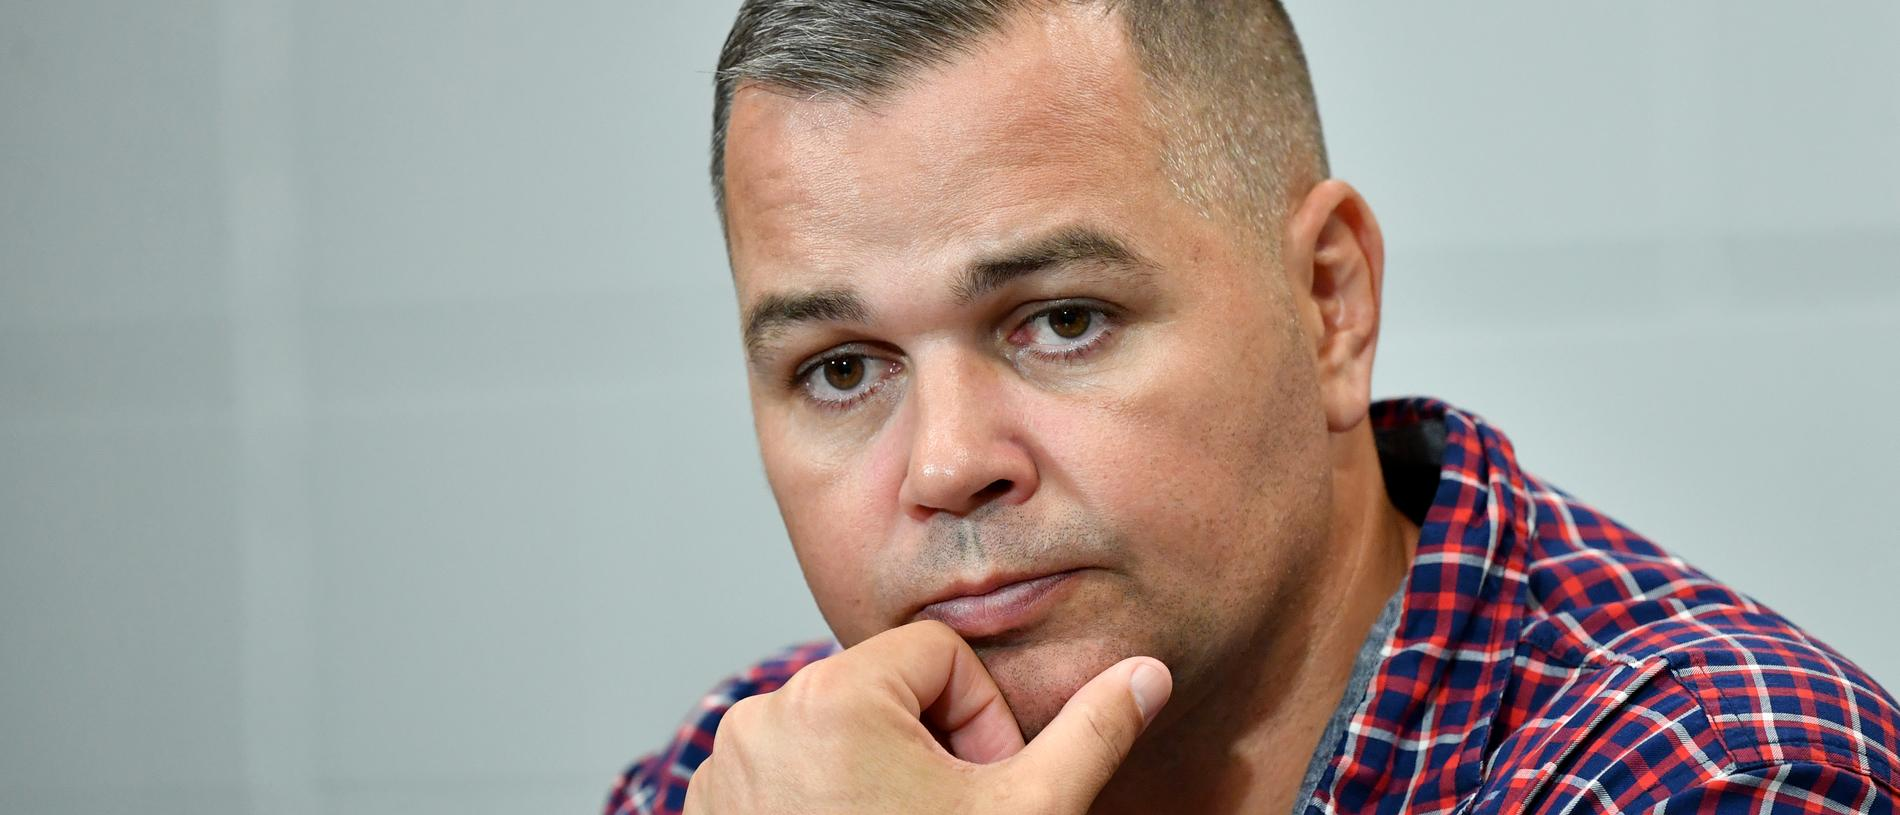 Broncos coach Anthony Seibold is seen during a press conference after the Round 3 NRL match between the Brisbane Broncos and the Parramatta Eels at Suncorp Stadium in Brisbane, Thursday, May 28, 2020. (AAP Image/Darren England) NO ARCHIVING, EDITORIAL USE ONLY